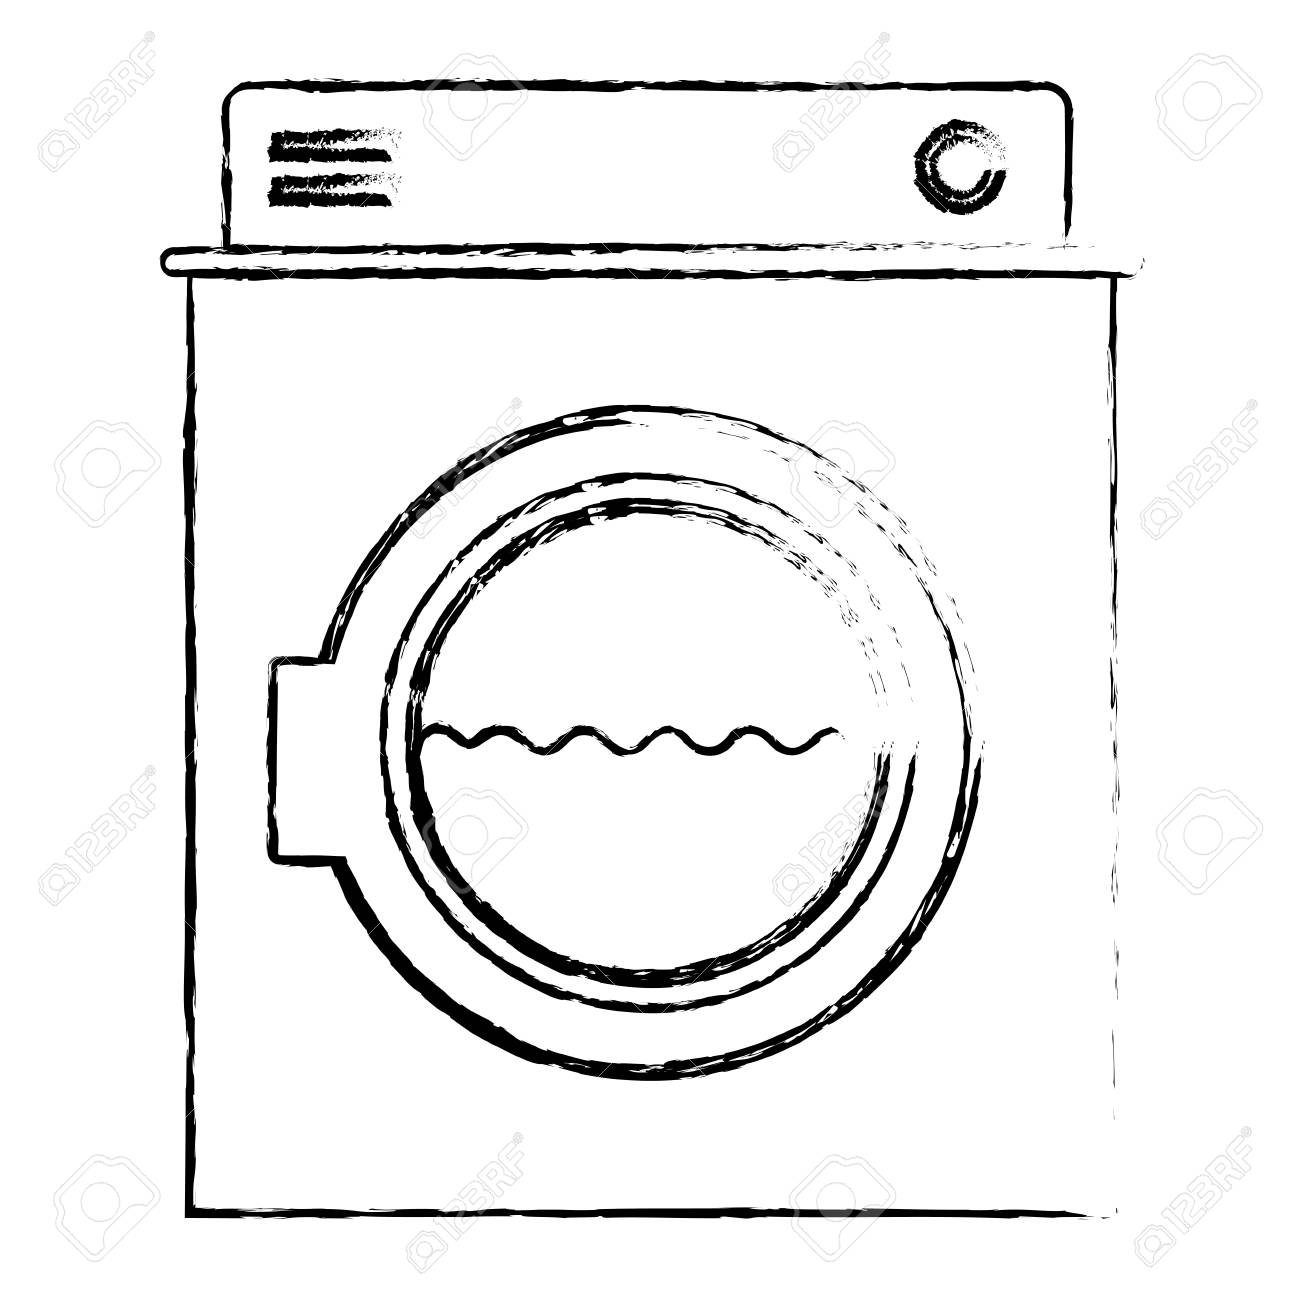 hight resolution of monochrome blurred silhouette of washing machine with water medium level vector illustration stock vector